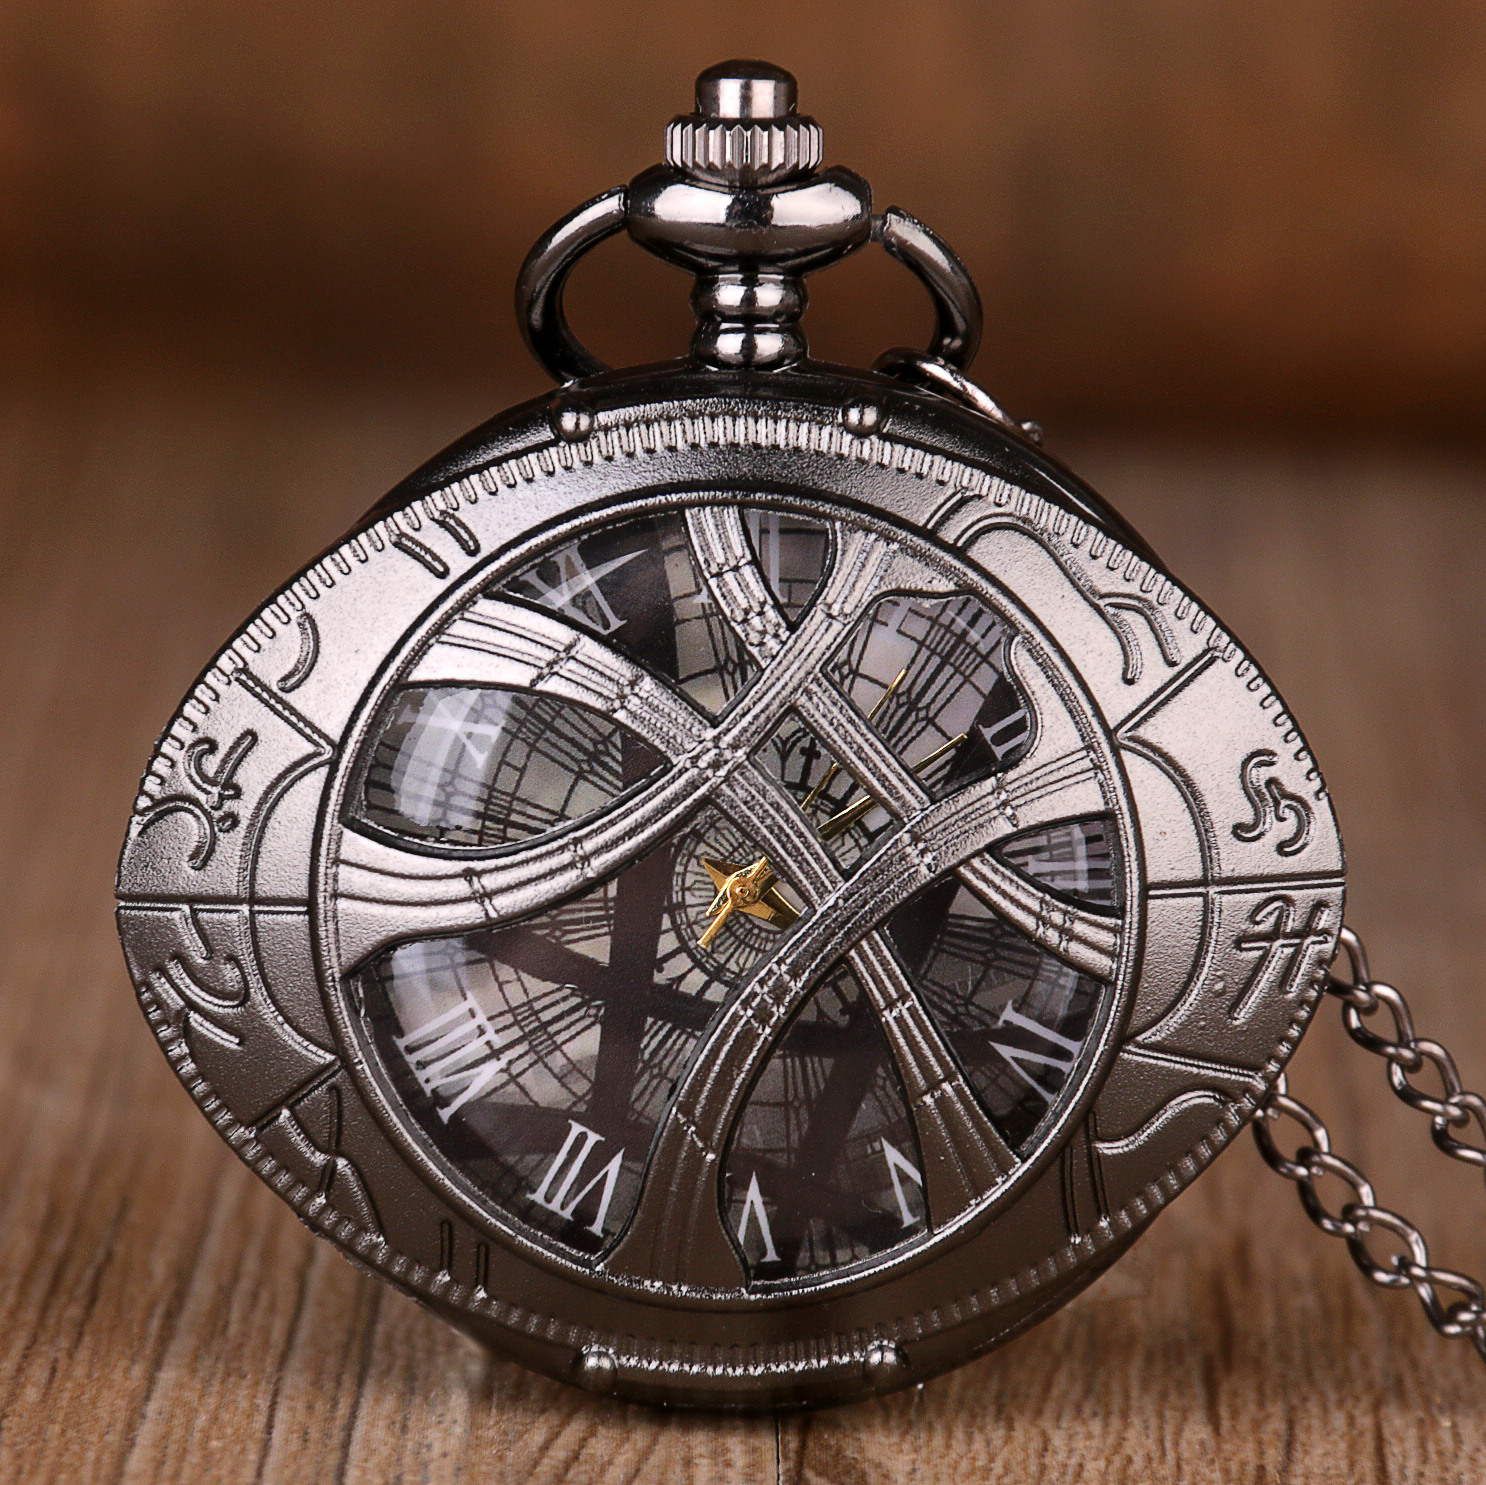 New Vintage Bronze Pocket Watches Eyes Design Shape Quartz Pocket Watches Jewelry Pendant Necklace Chain Gifts For Mens Womens